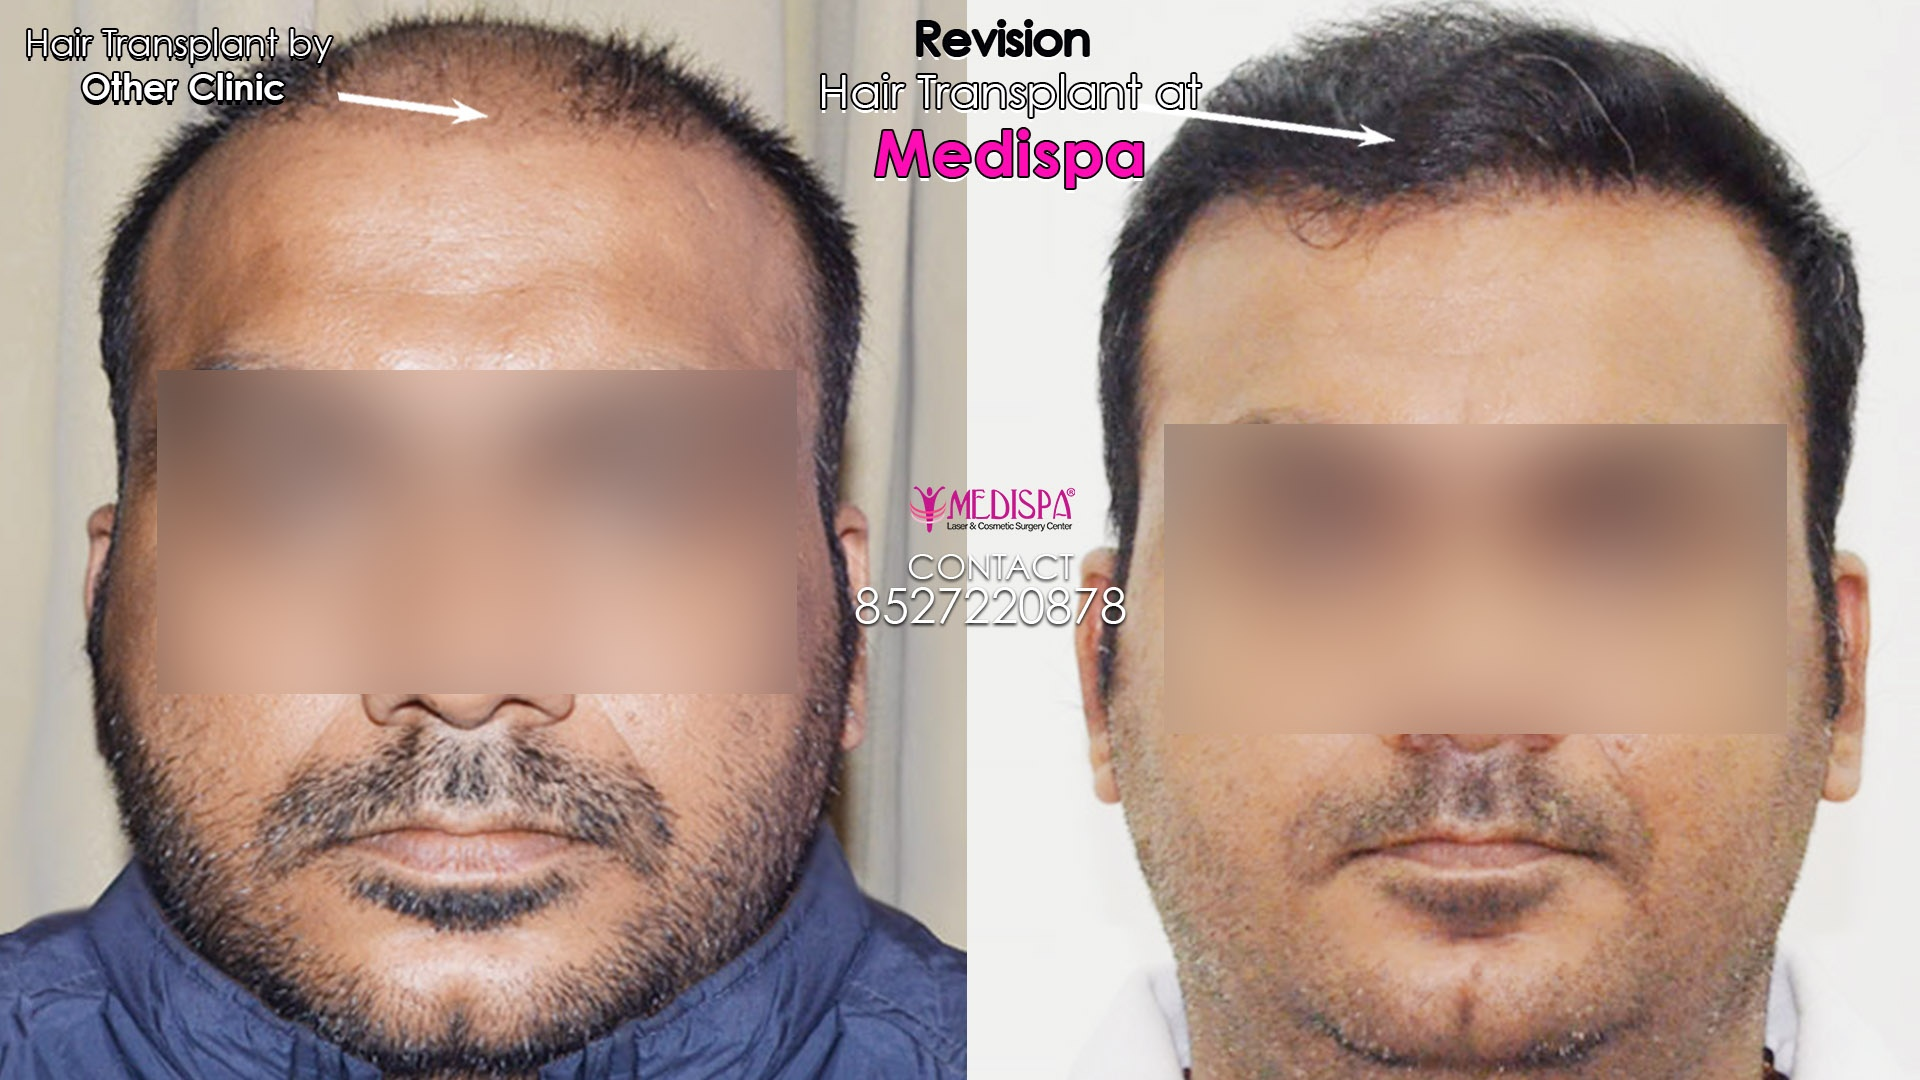 Hair Transplant in Bikaner | 8527220878